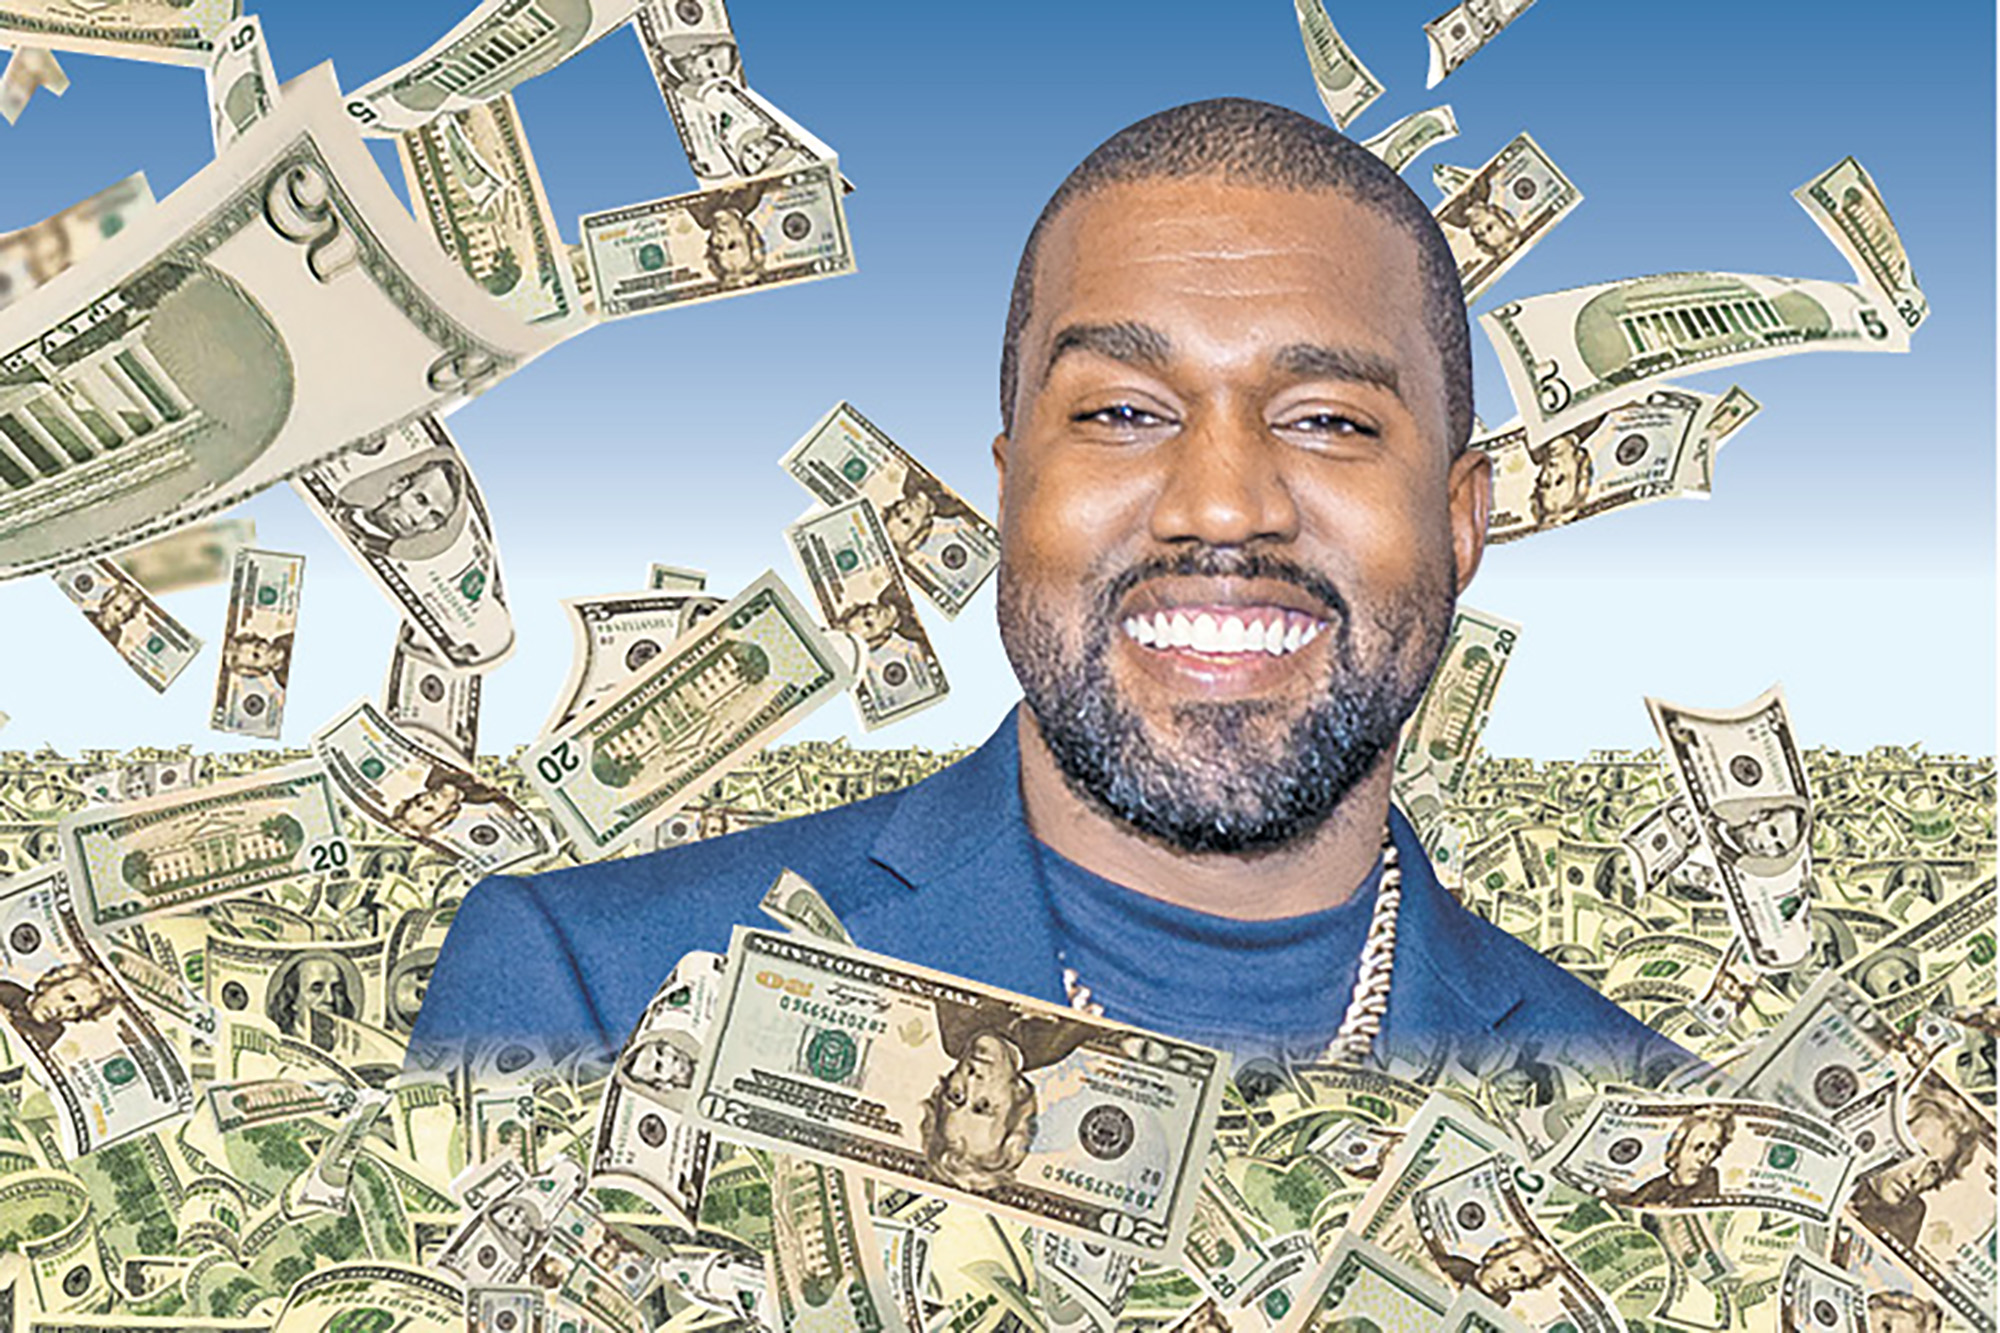 Kanye West could now be worth more than $19 billion